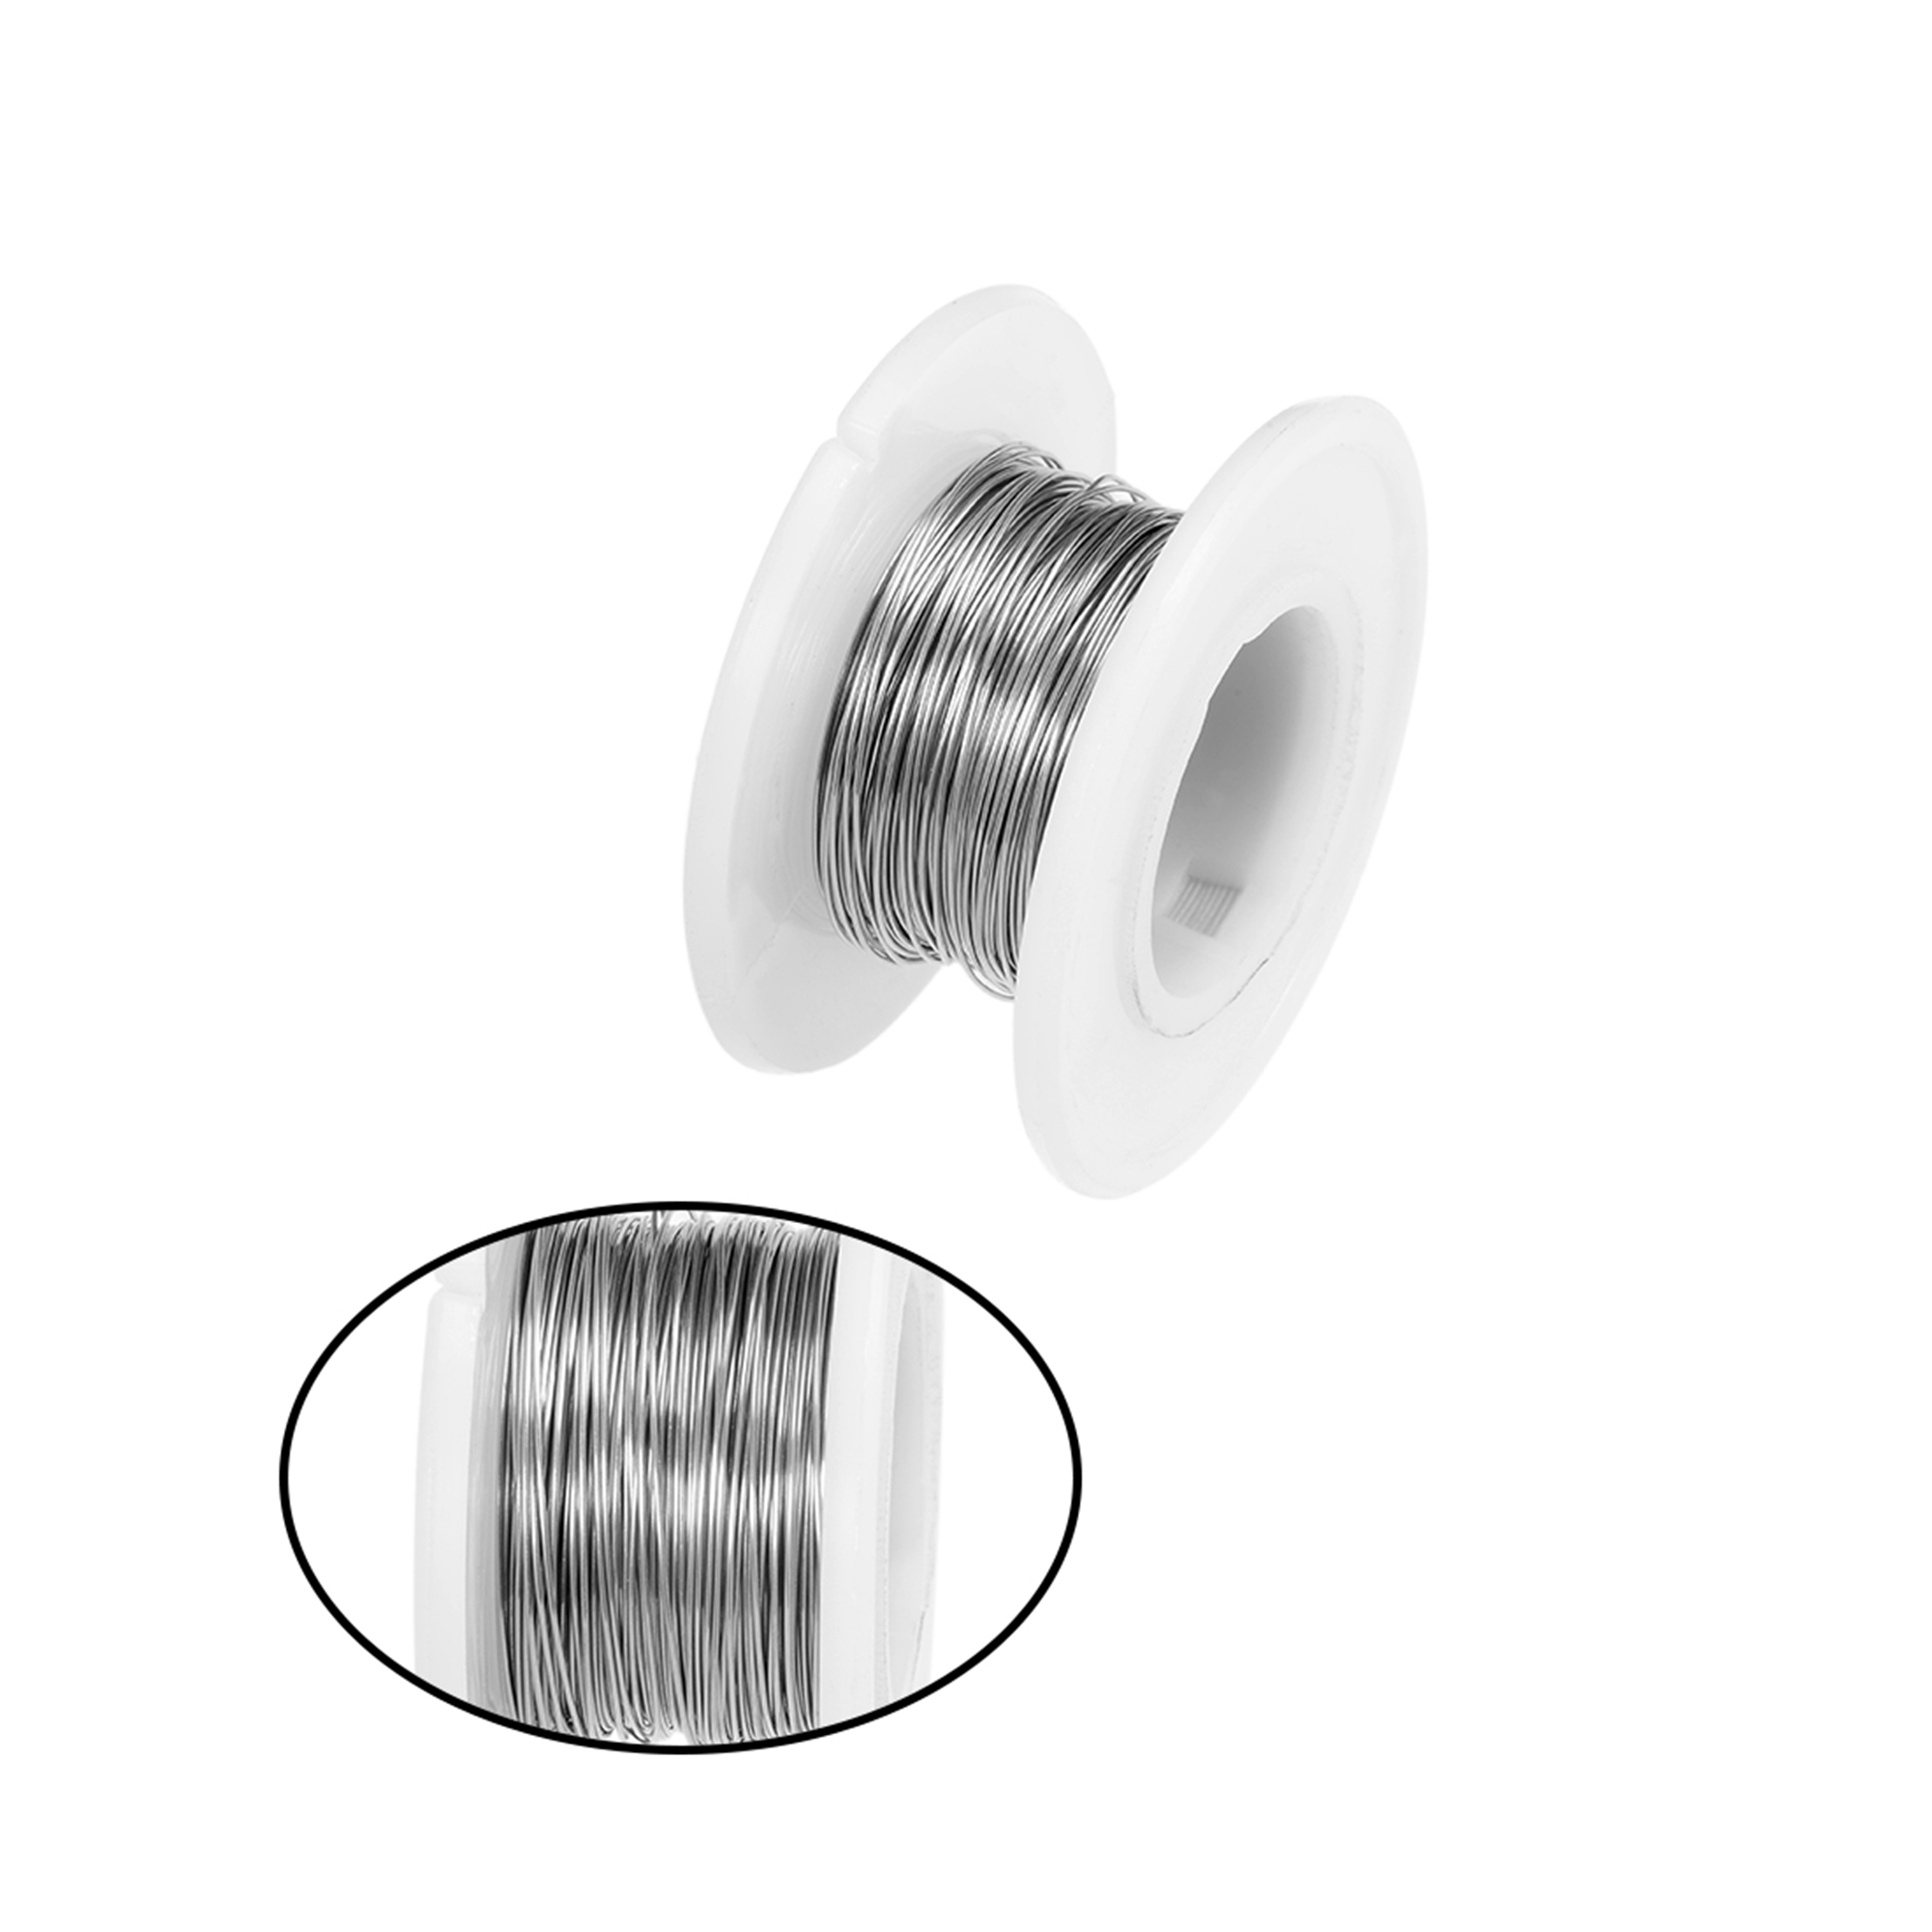 0.35mm 28AWG Heating Resistor Wire Nichrome Resistance Wires for Heating Elements 32.8ft - image 2 de 4